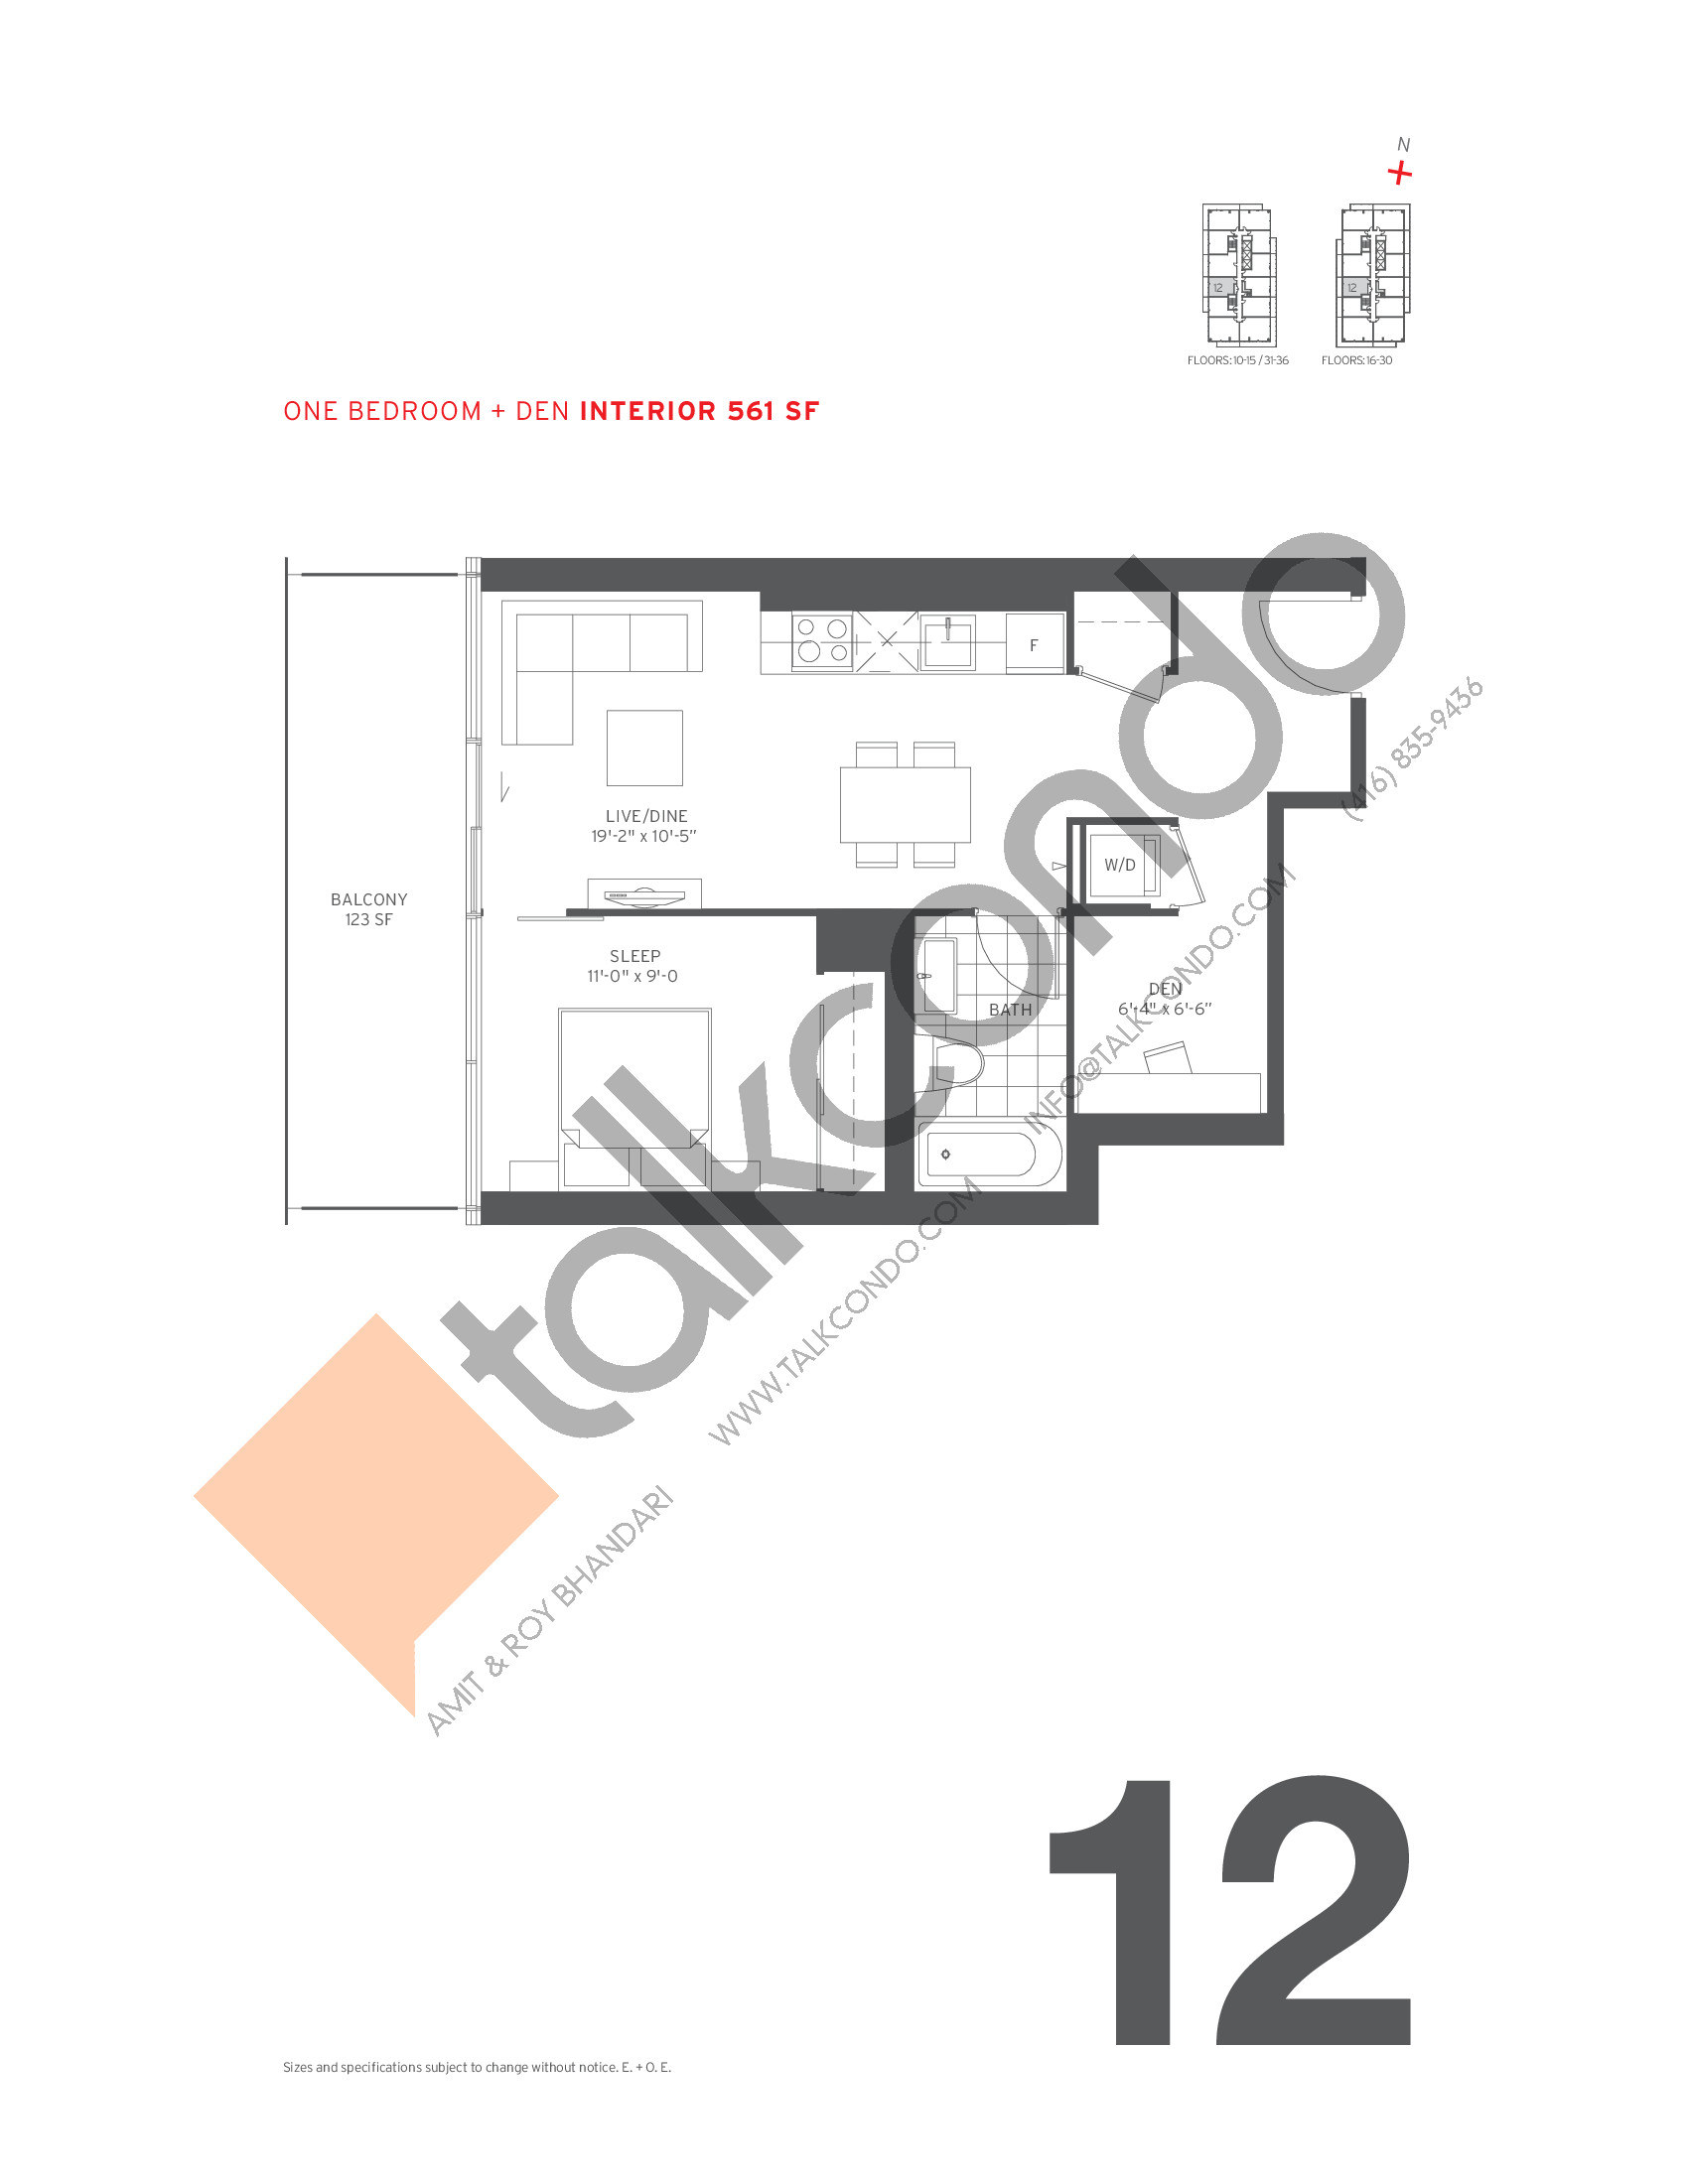 12 Floor Plan at 155 Redpath Condos - 561 sq.ft